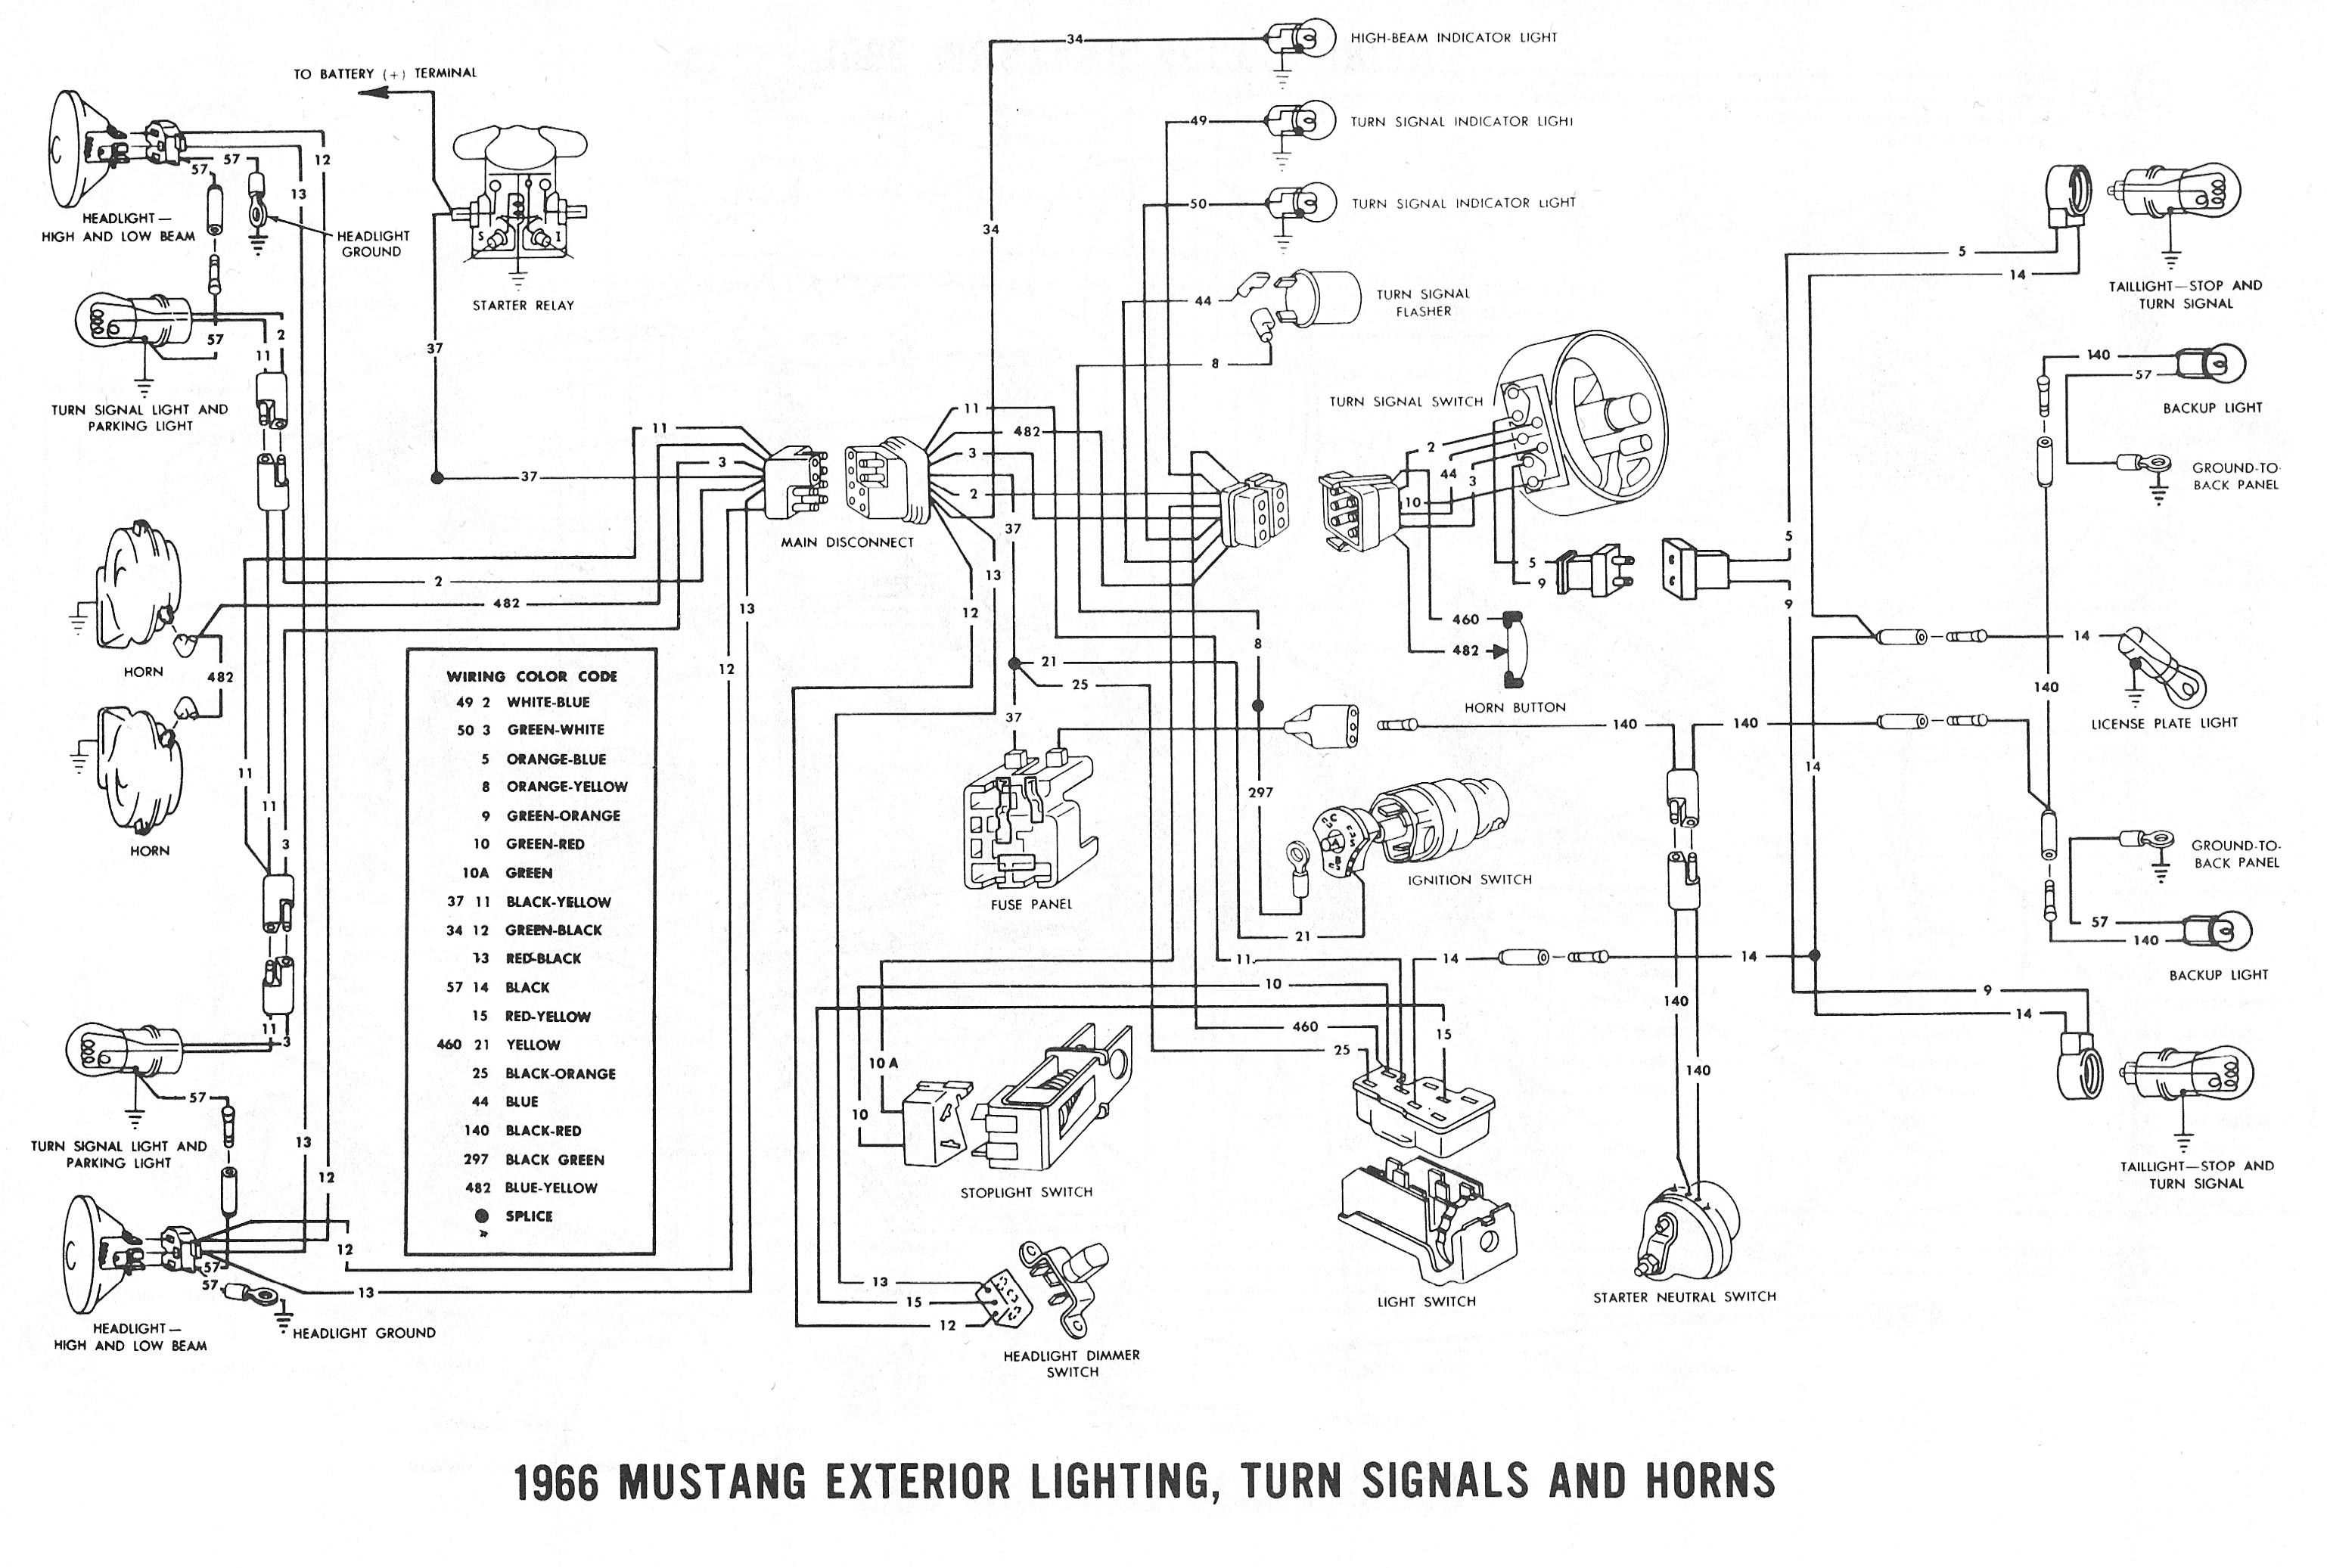 66 thunderbird wiring diagram schematics wiring diagrams u2022 rh  schoosretailstores com 1987 Mustang Alternator Wiring Diagram 1987 Mustang  Alternator ...